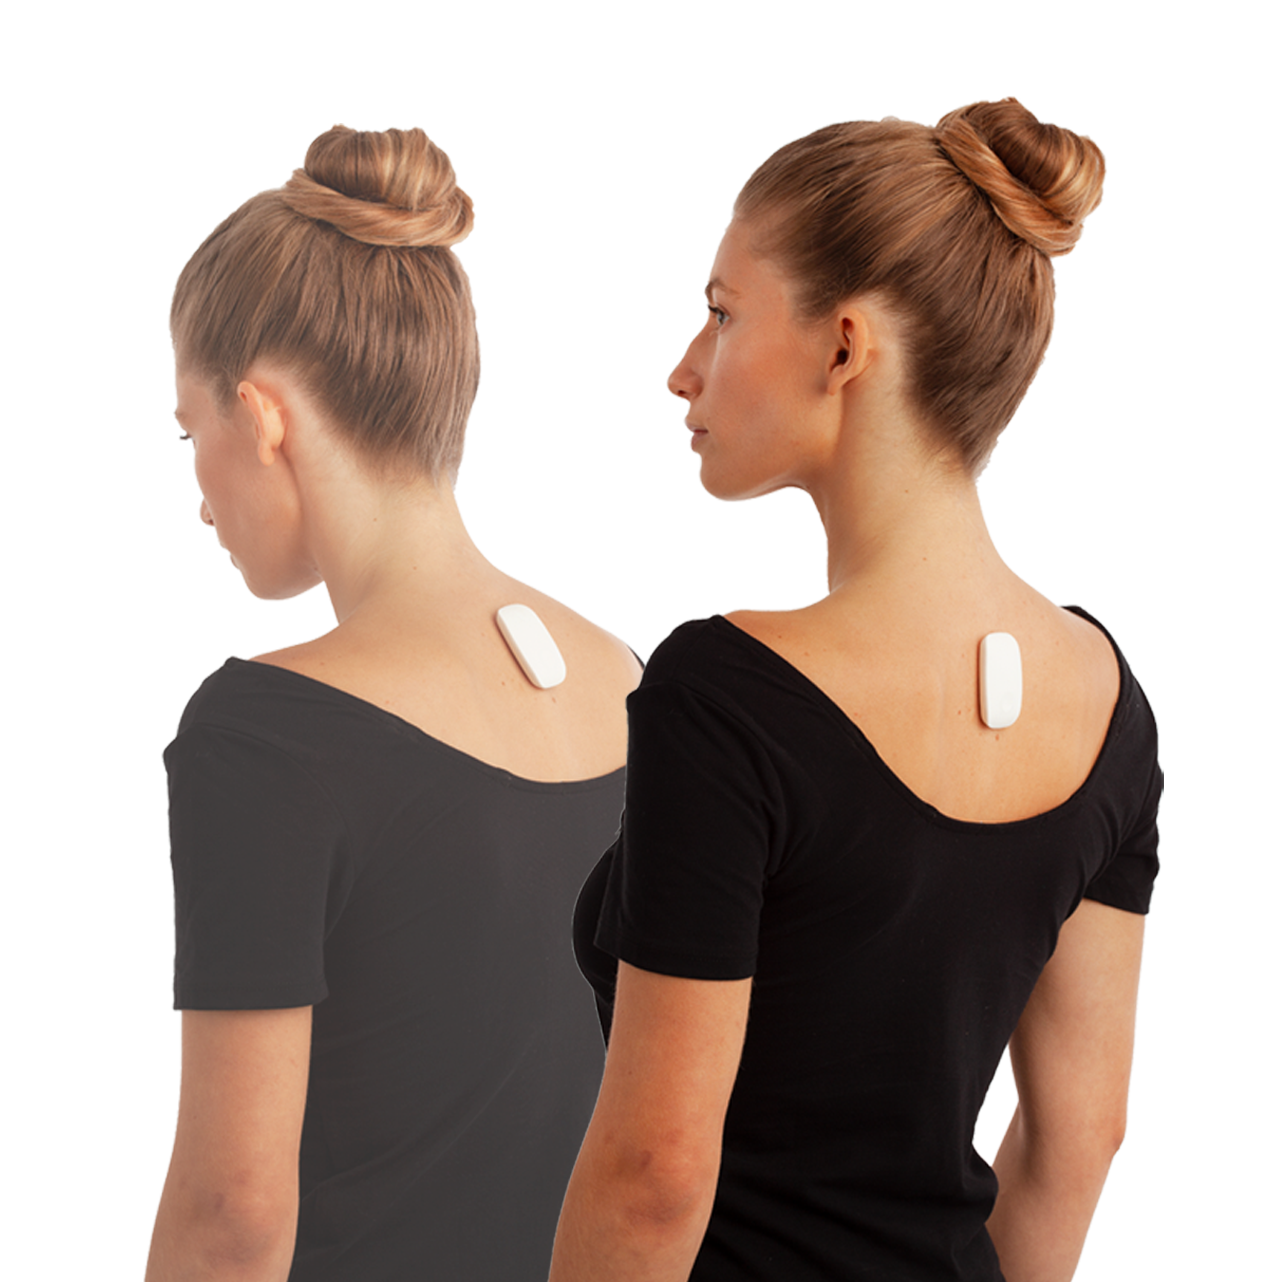 upright go posture corrector device on a woman's back